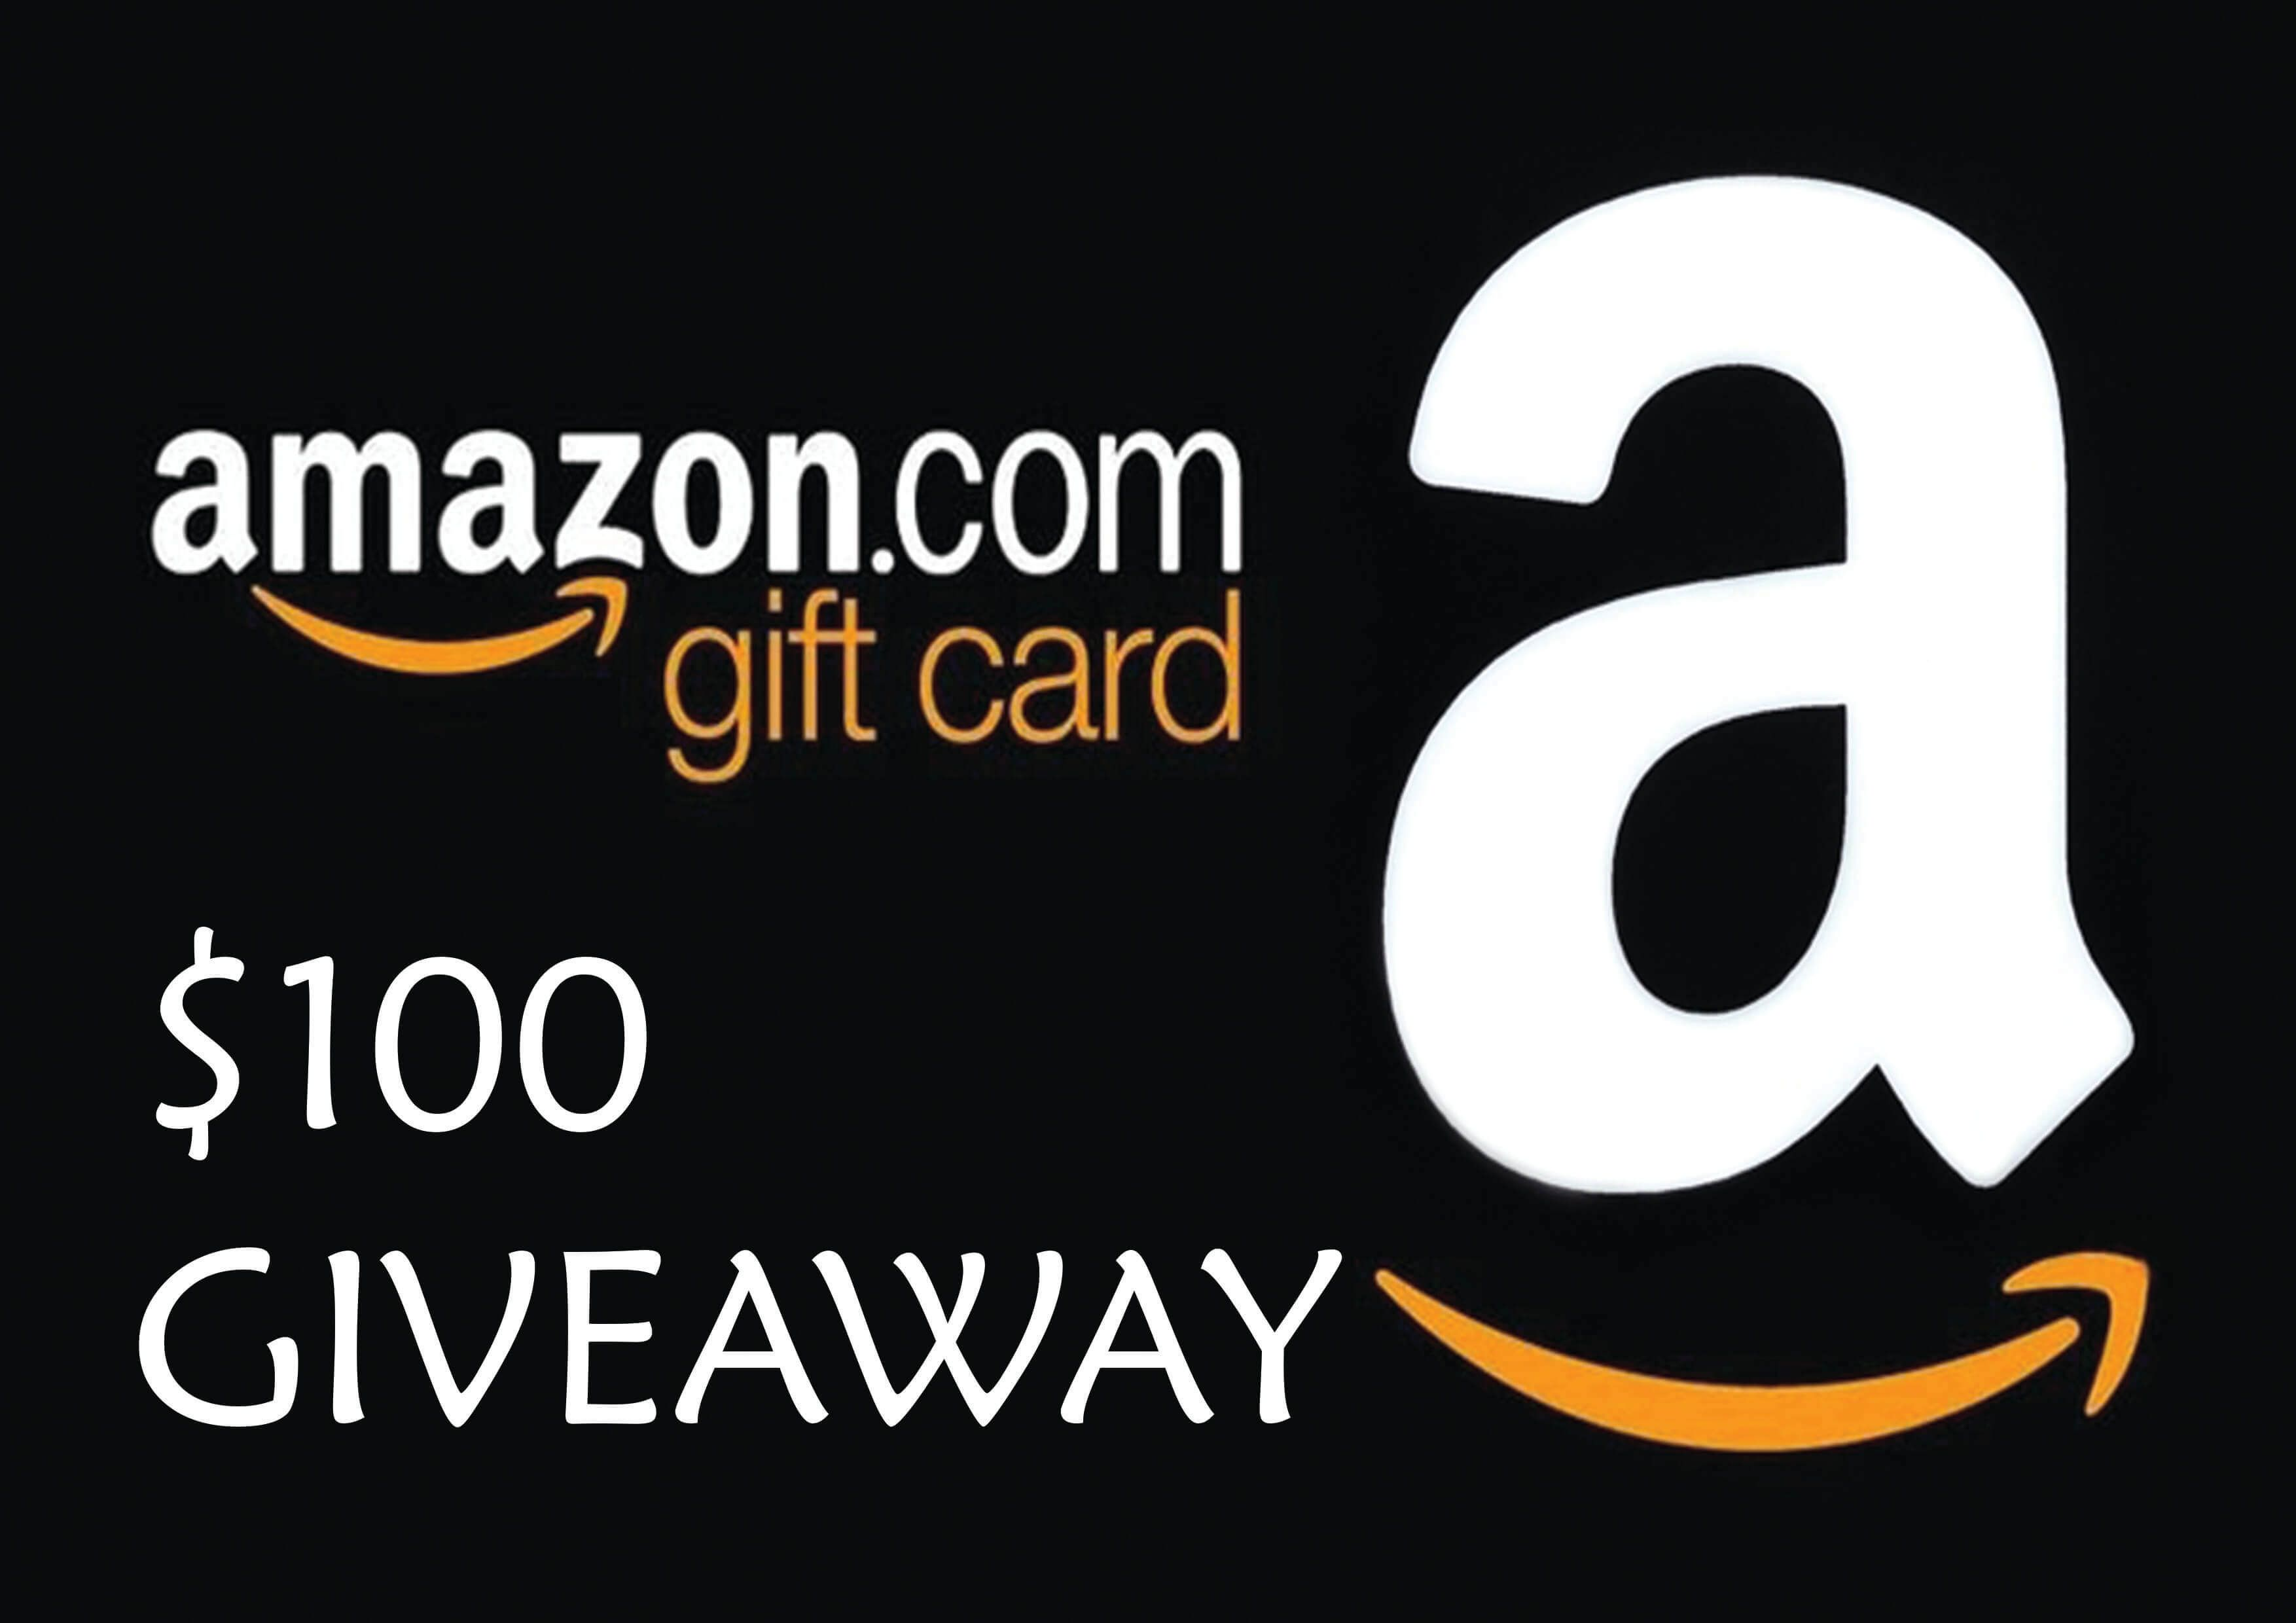 Enter To Win A 100 Amazon Gift Card To Save Money On Shopping